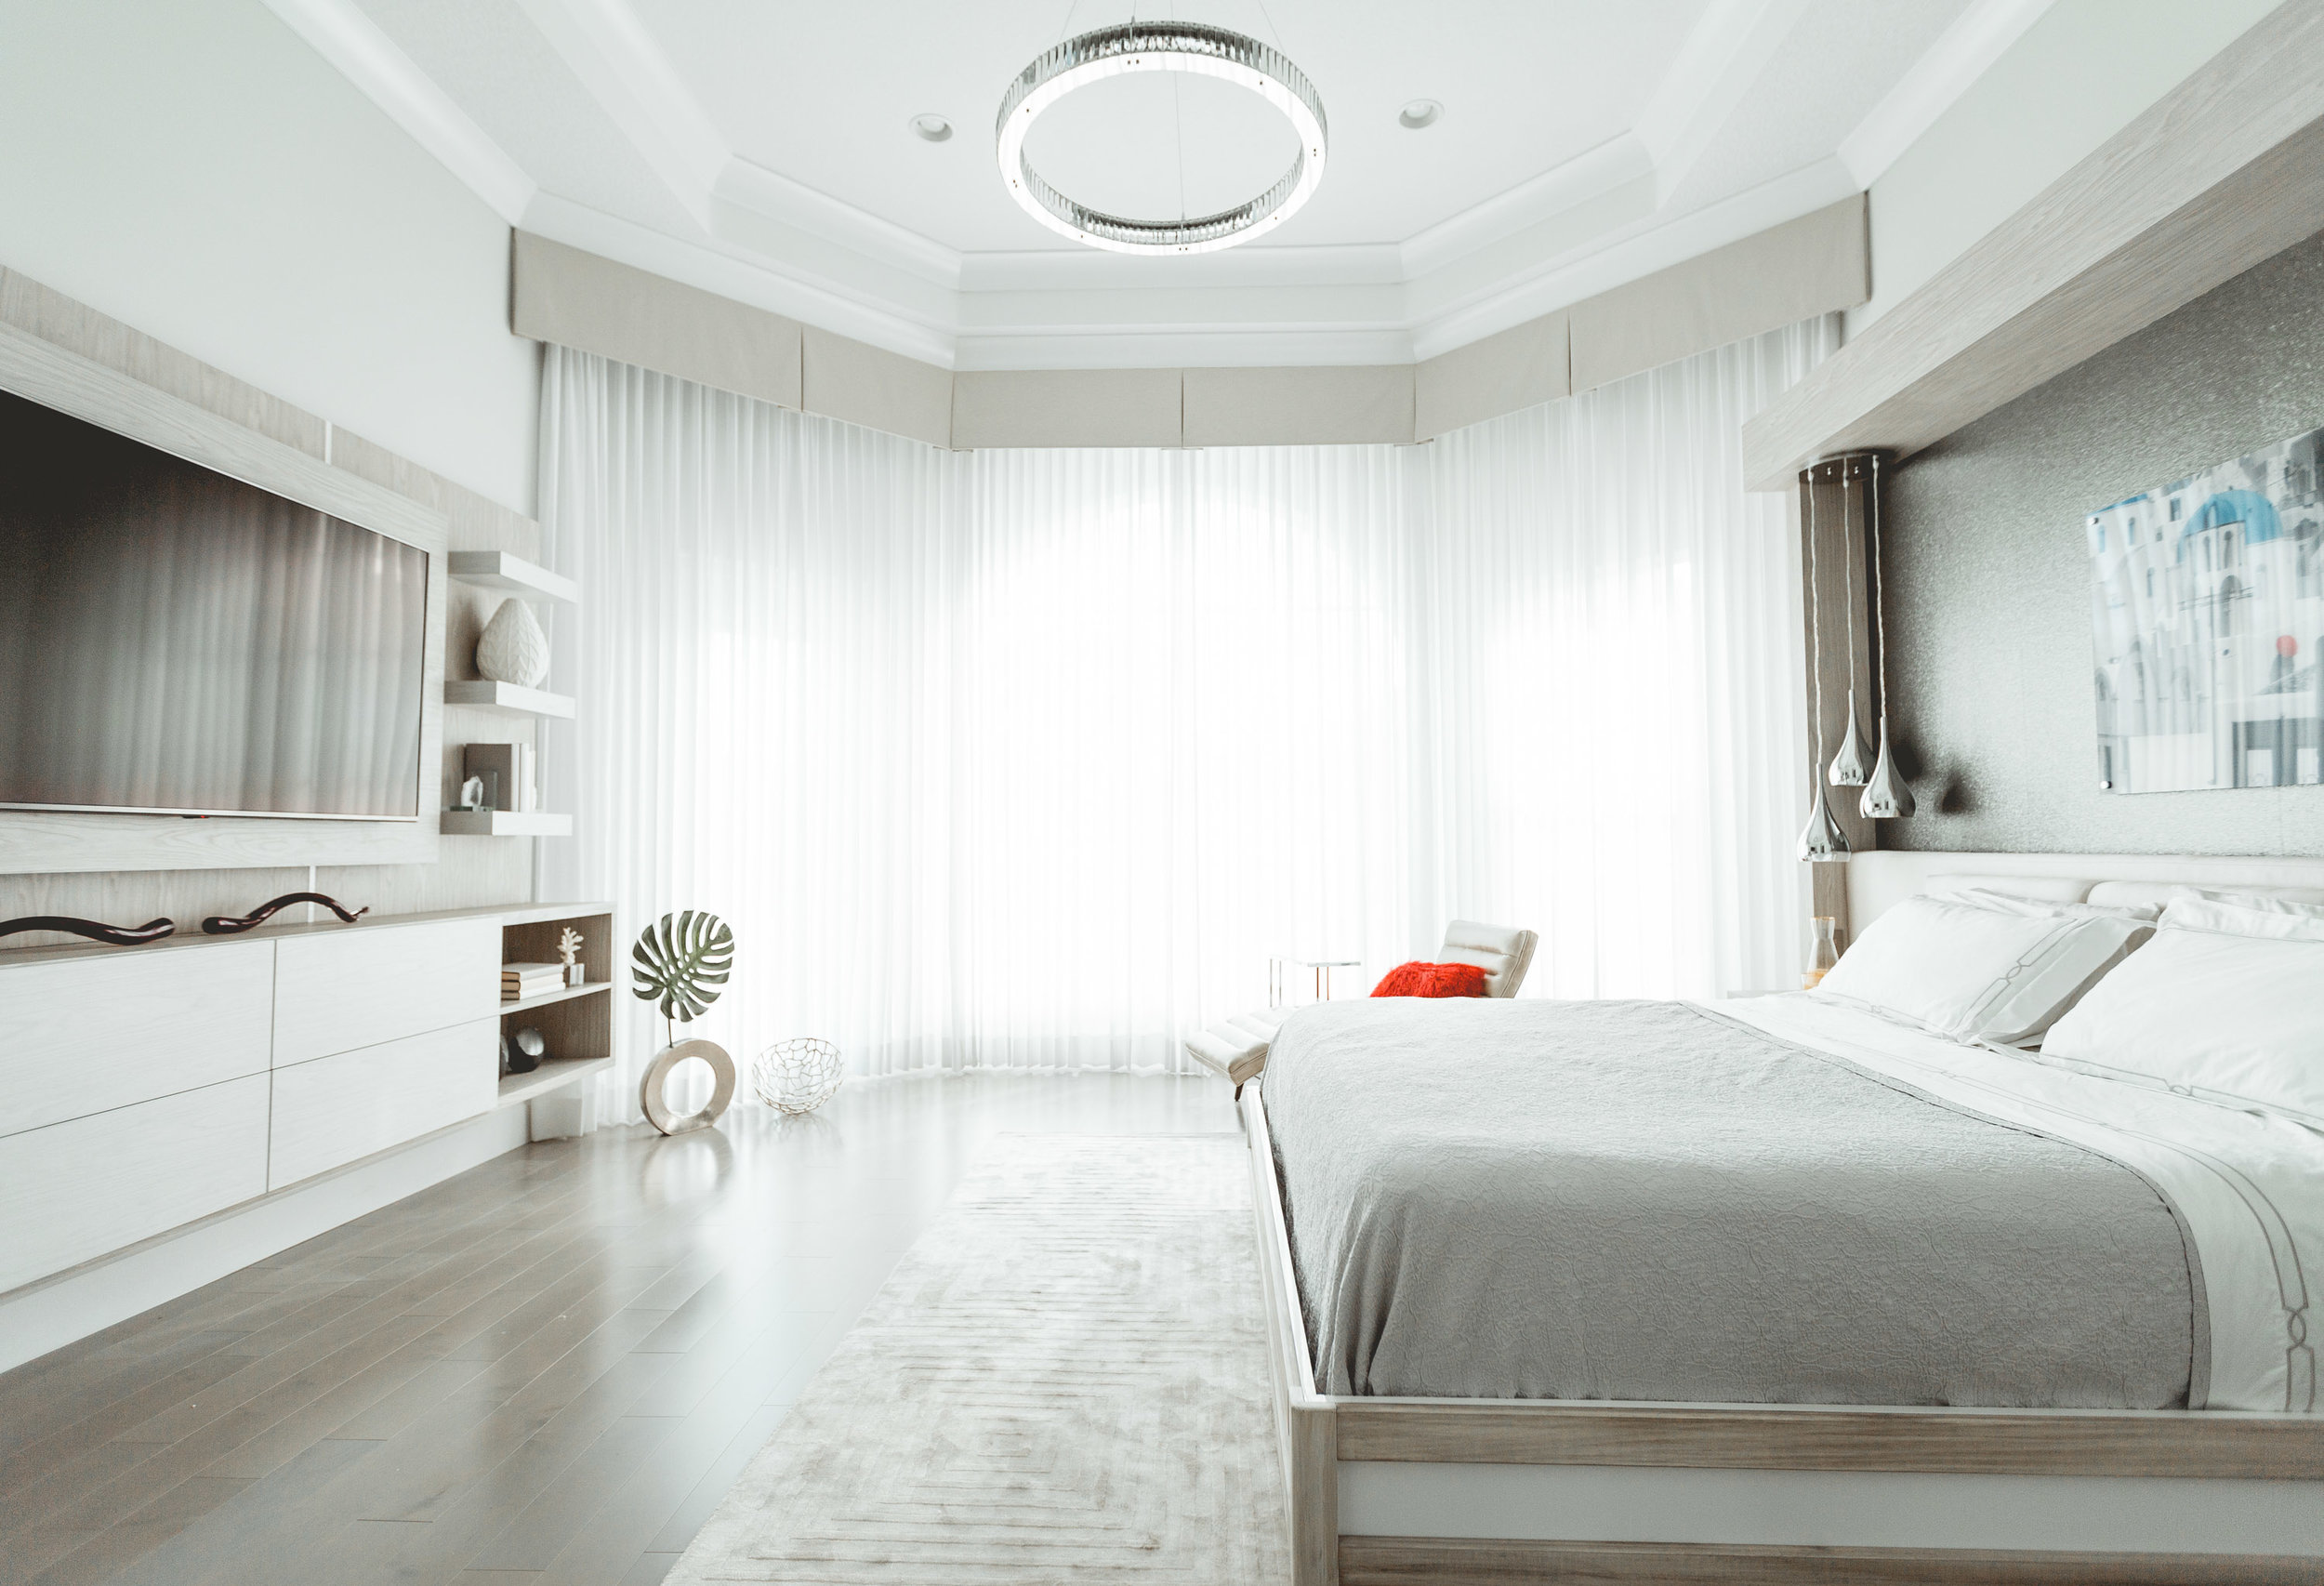 Tranquil Contemporary-Master Suite Remodel-Delray Beach-9054.jpg